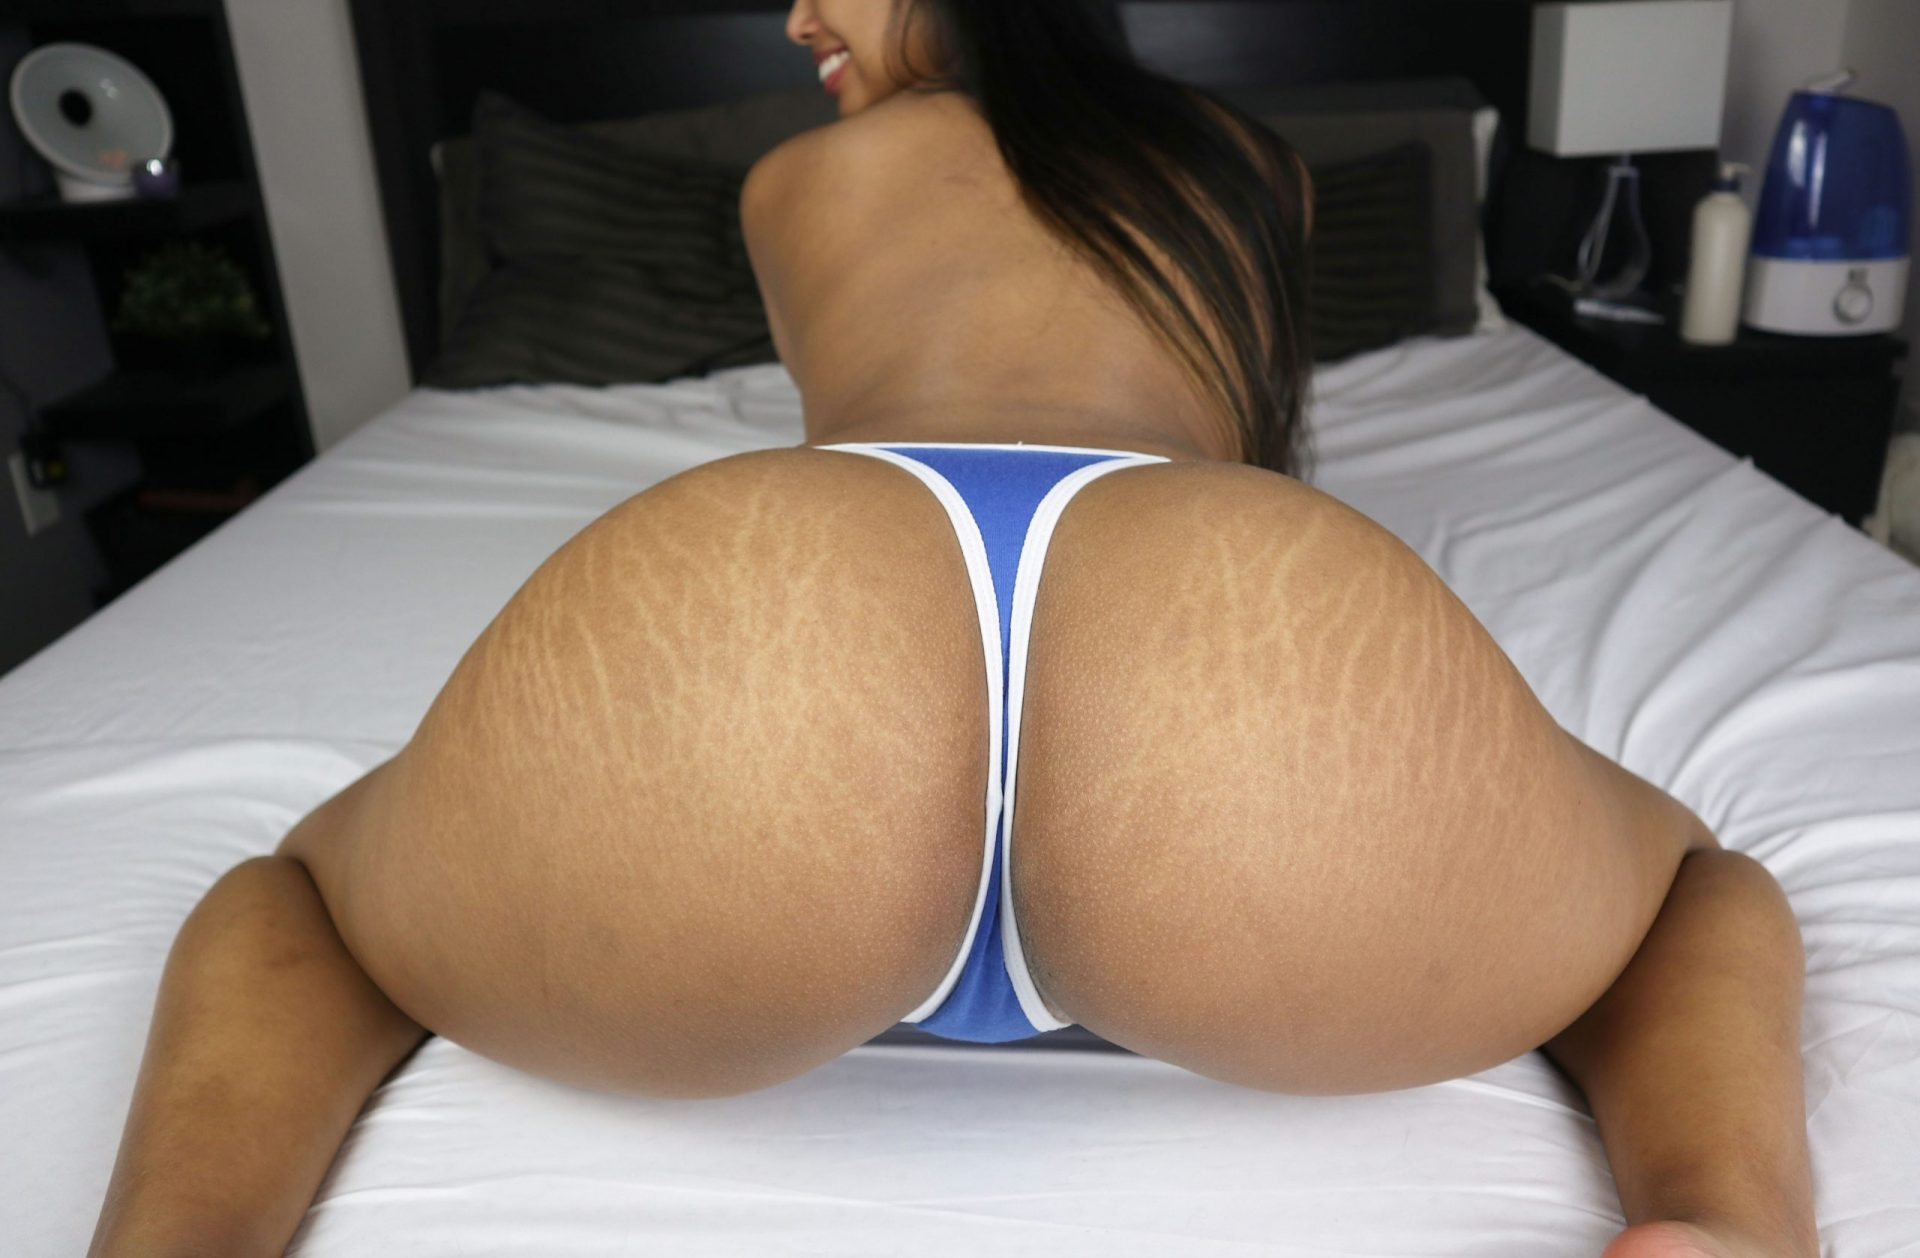 My fat filipina ass is covered in tiger stripes… Would you still pull my panties aside?